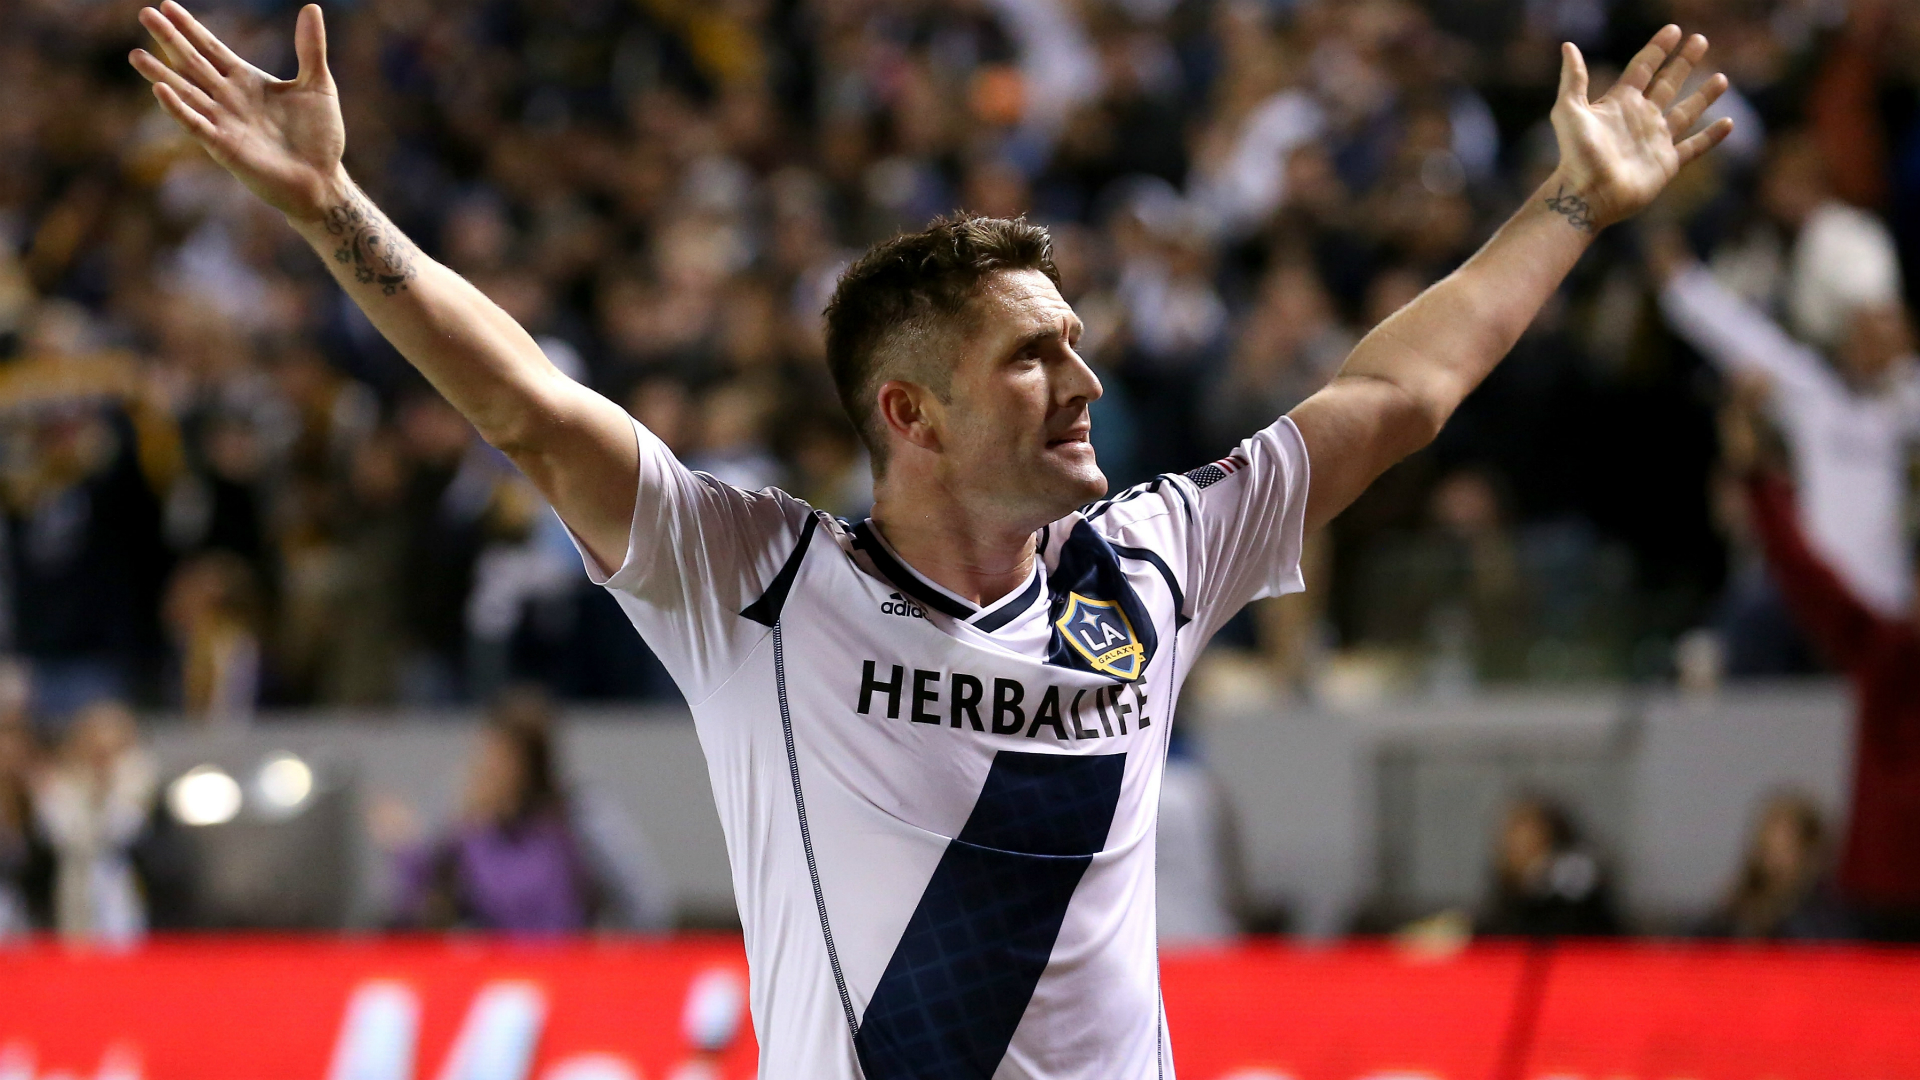 Robbie Keane Seattle Sounders v LA Galaxy MLS 11112012